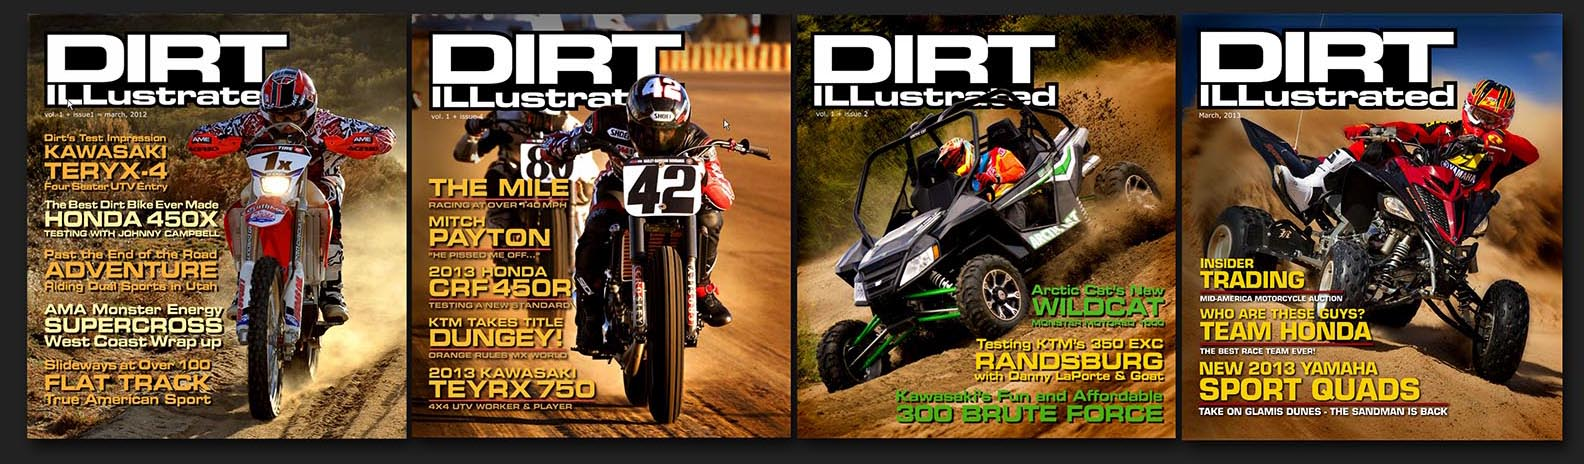 Dirt Illustrated magazine